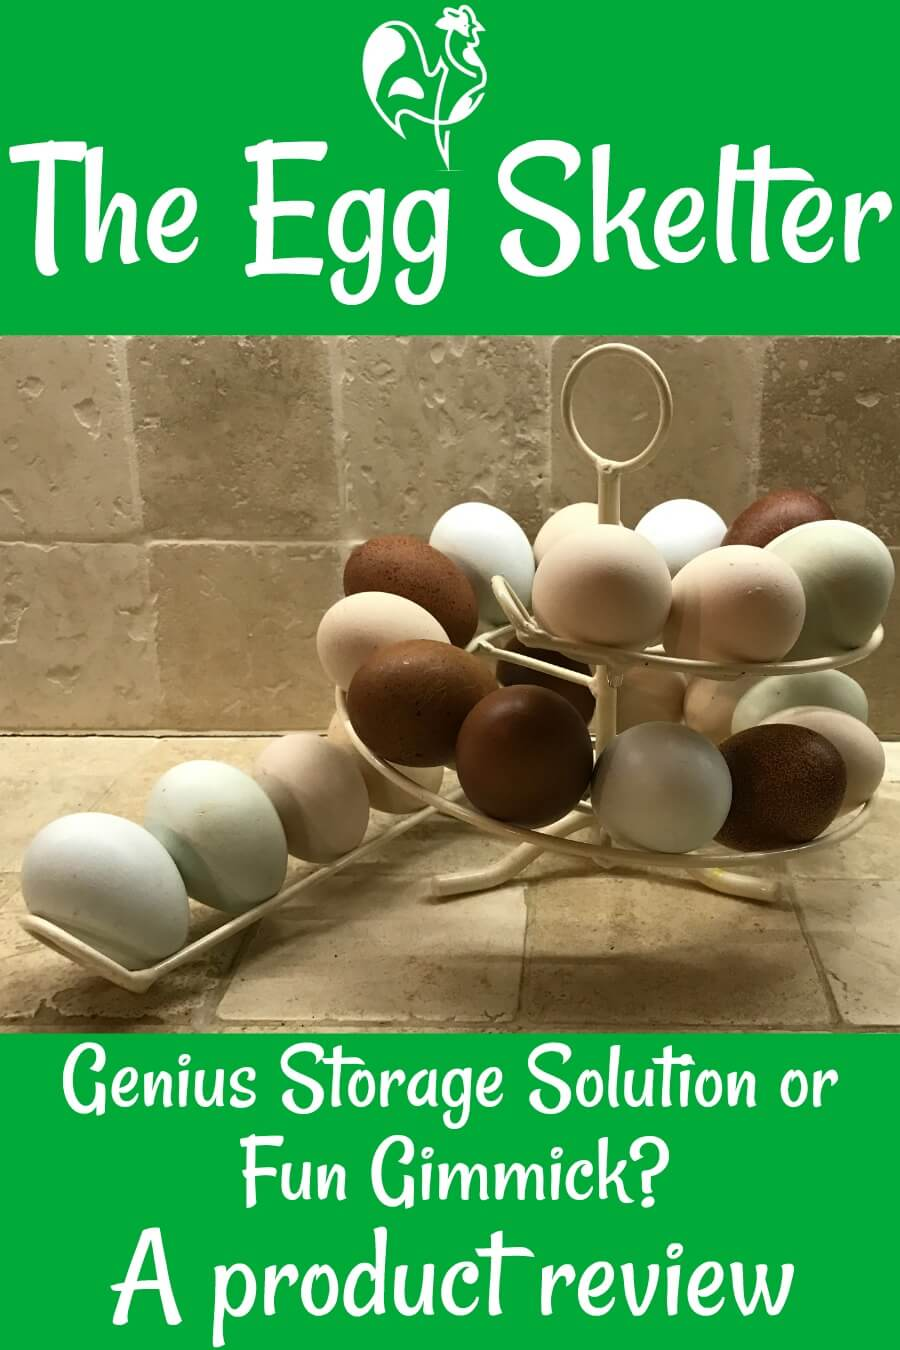 The Egg Skelter storage solution - a product review. Pin for later.